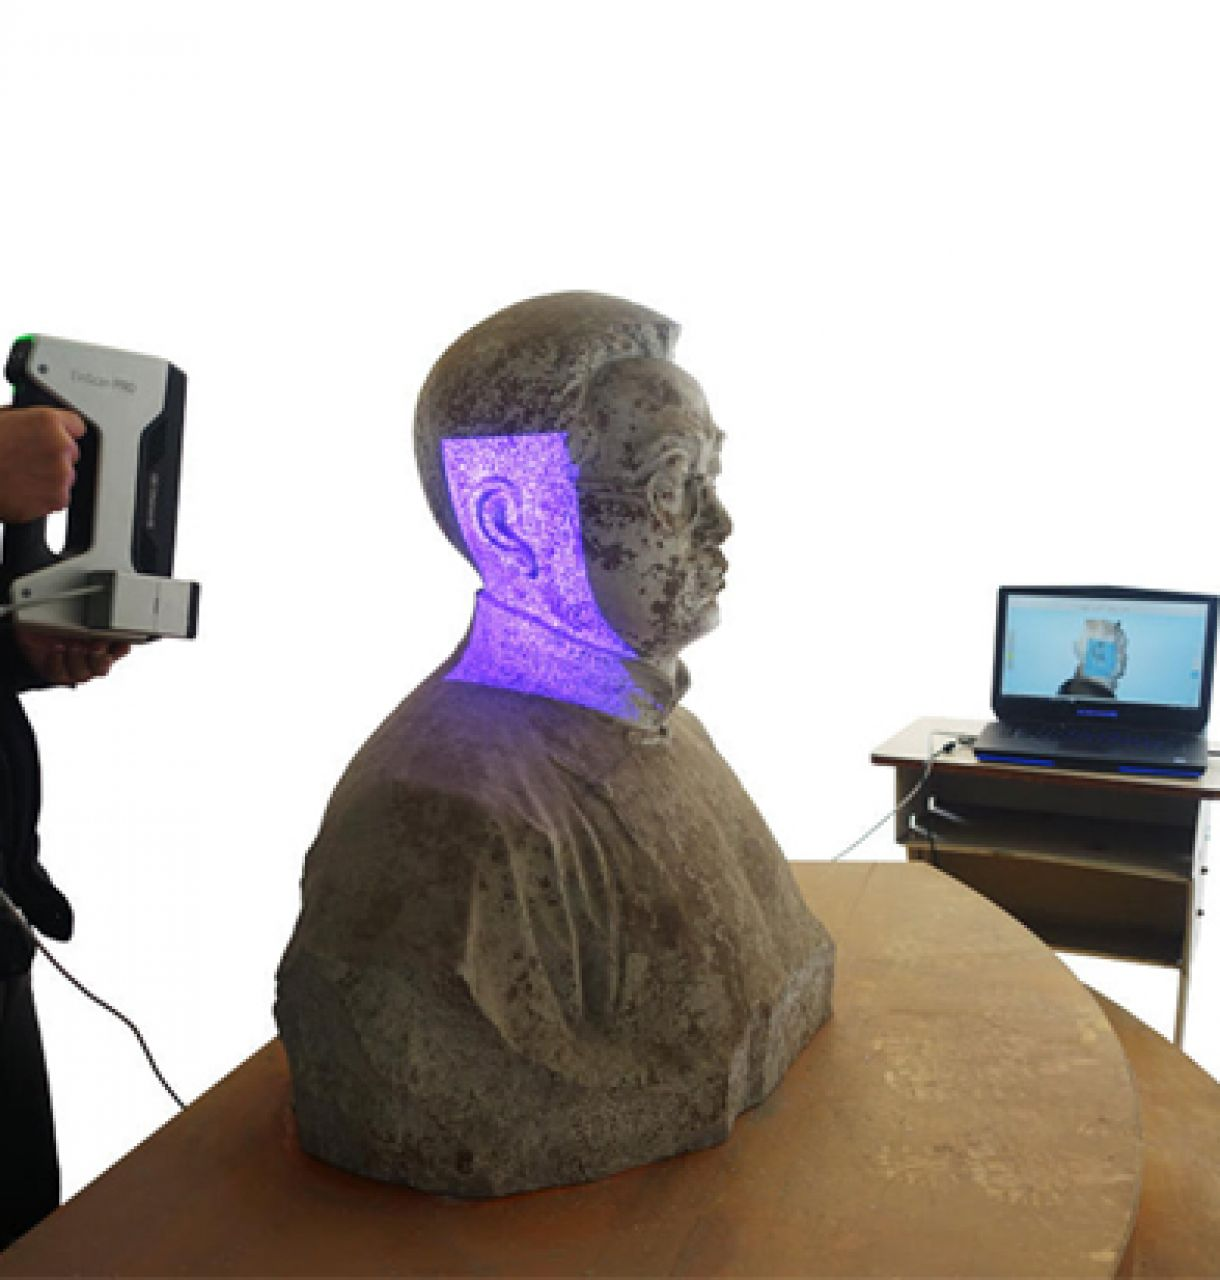 The 7 best 3D scanning apps for iOS and Android. - Aniwaa 3d scanning from photos